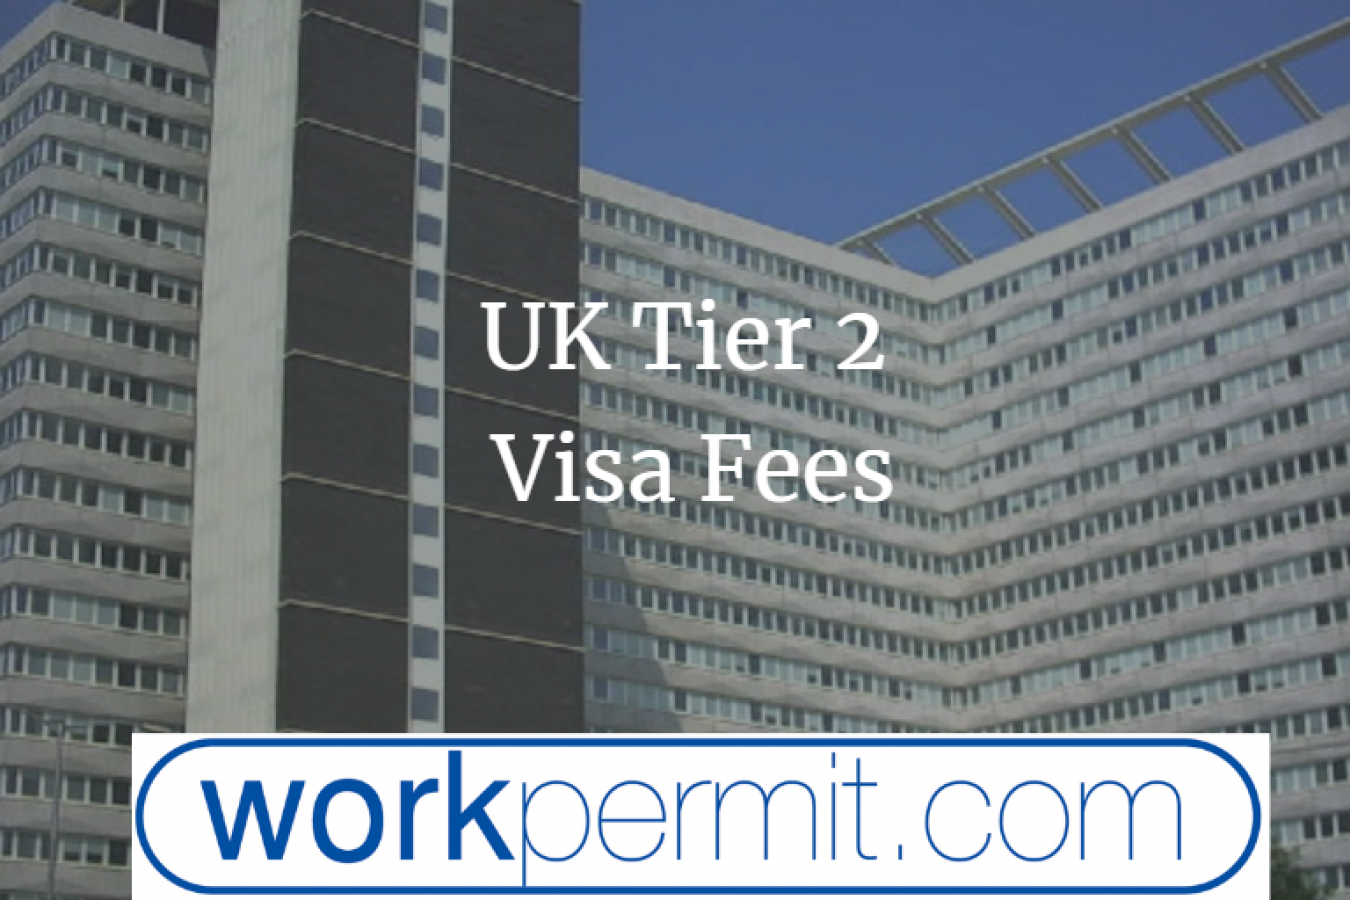 UK Tier 2 Visa Fees